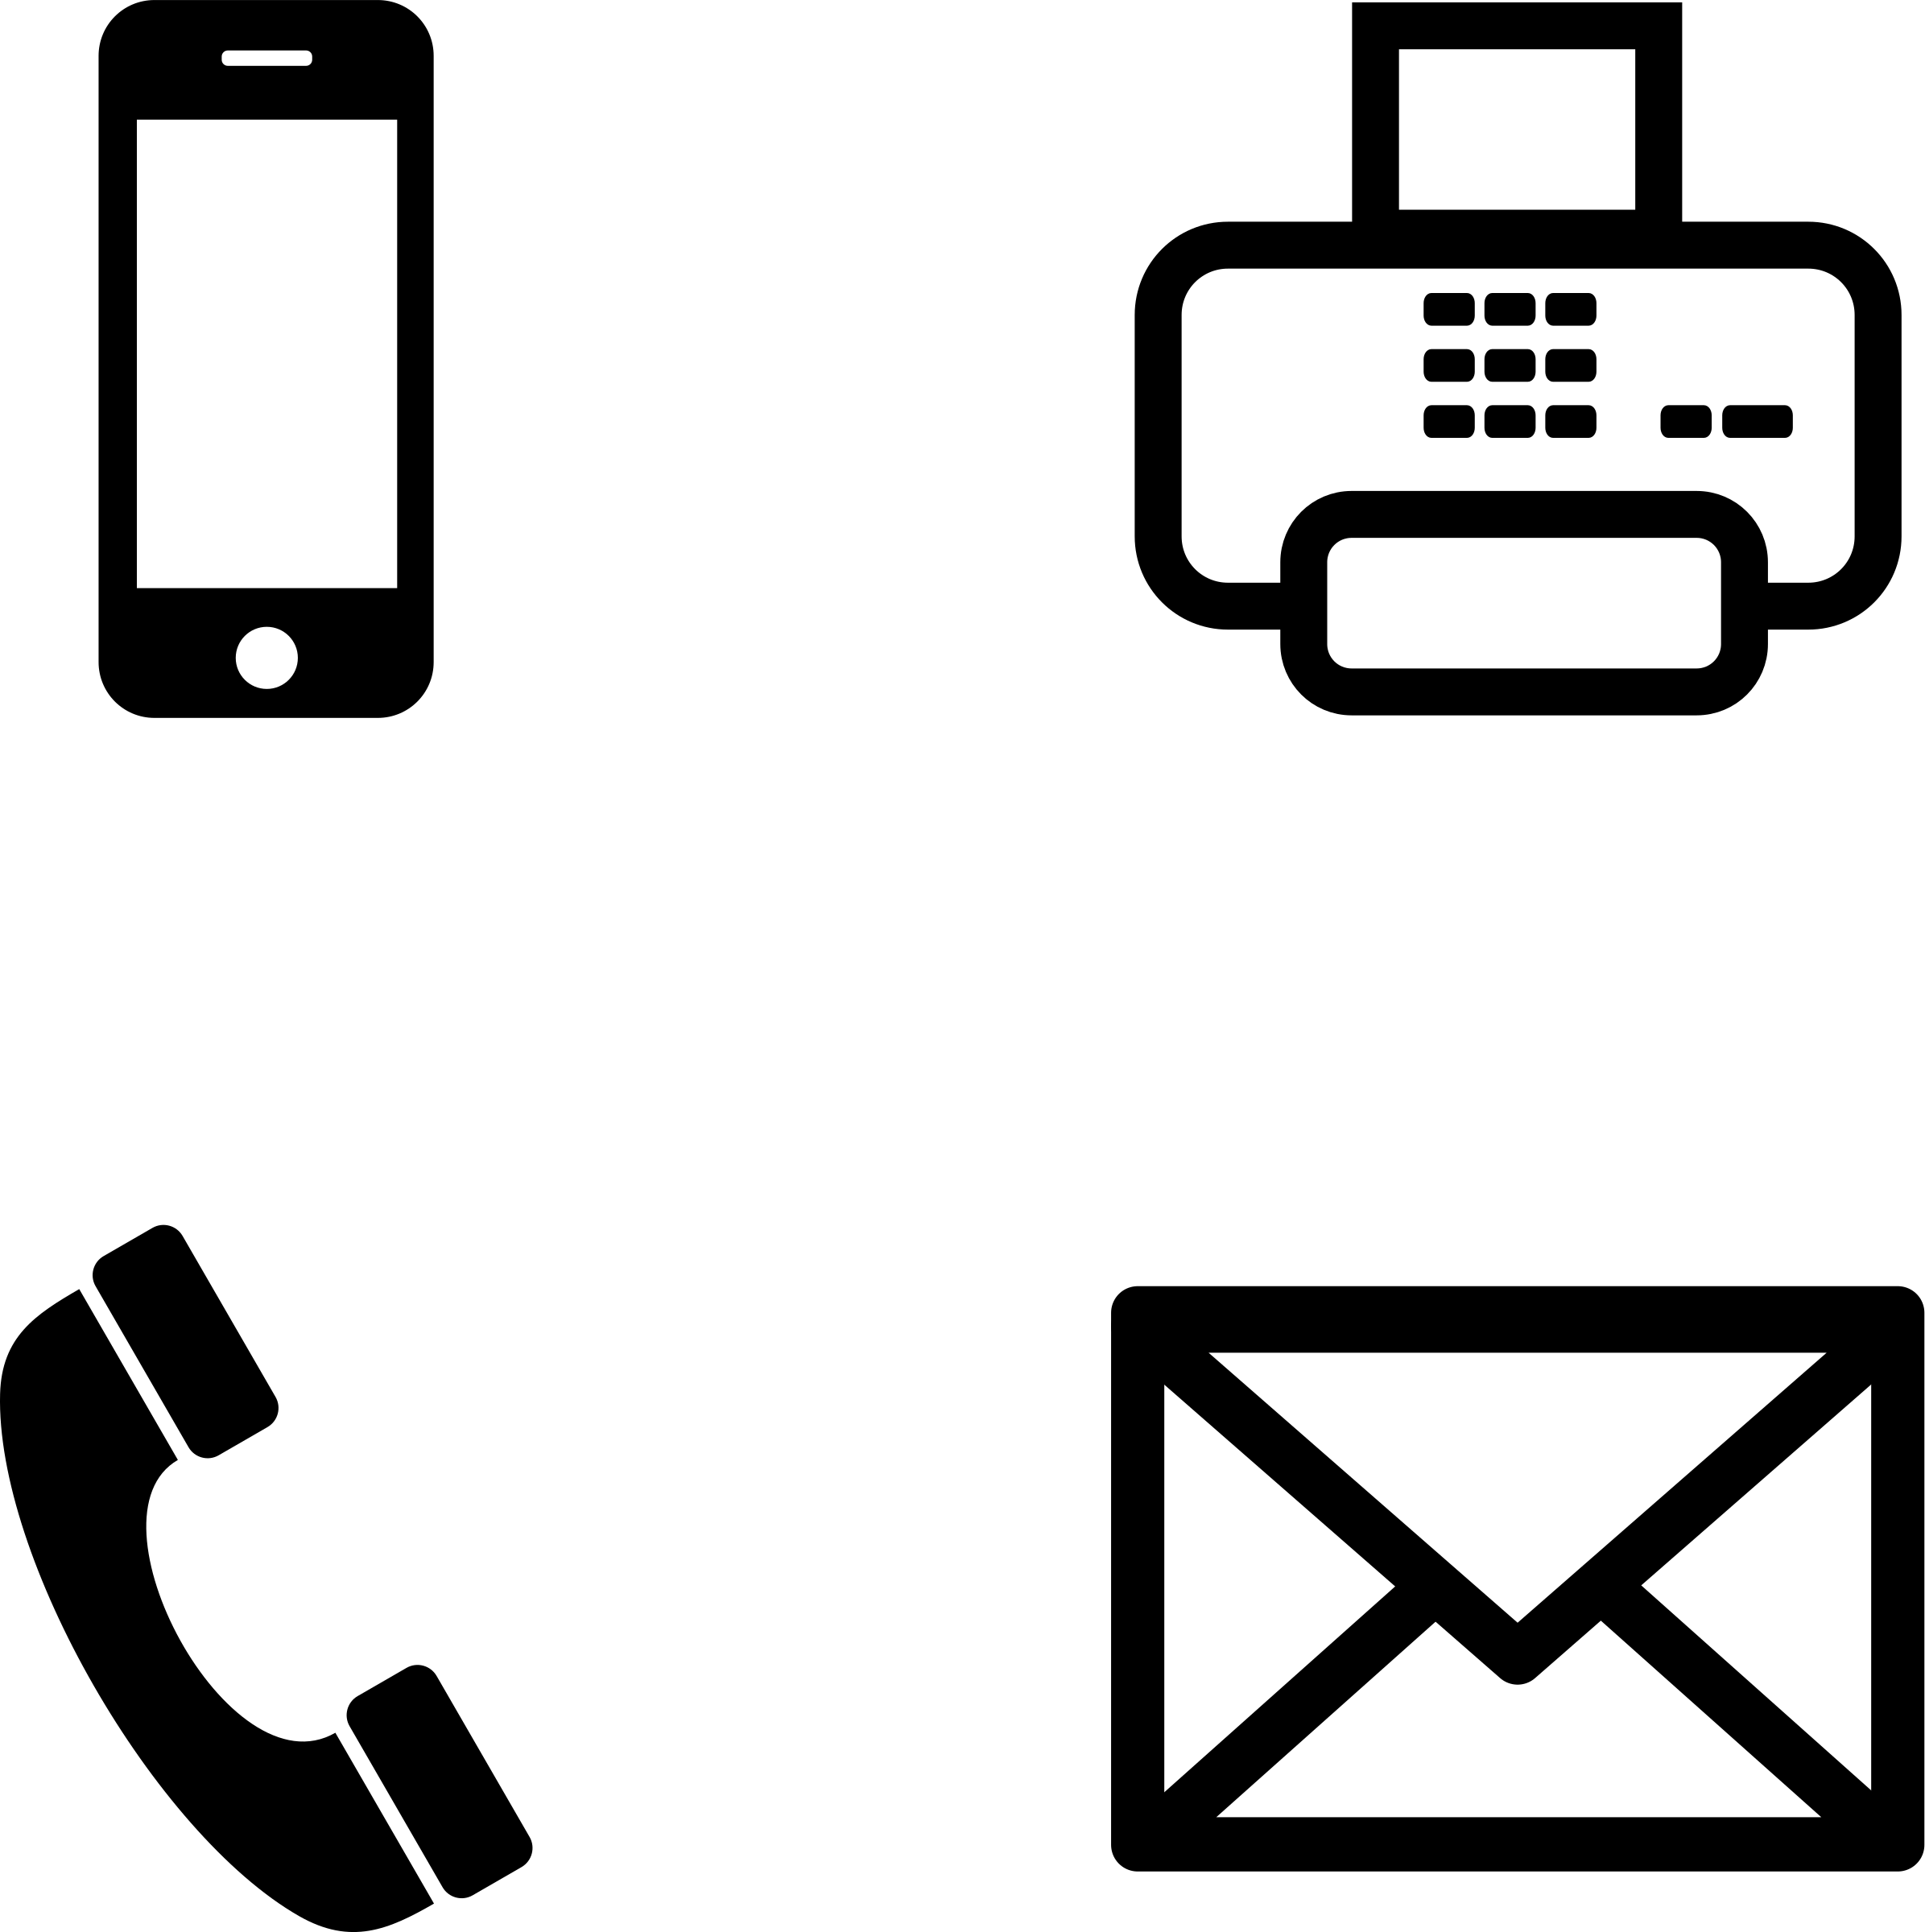 Phone email website icons png. Pack for emails signature